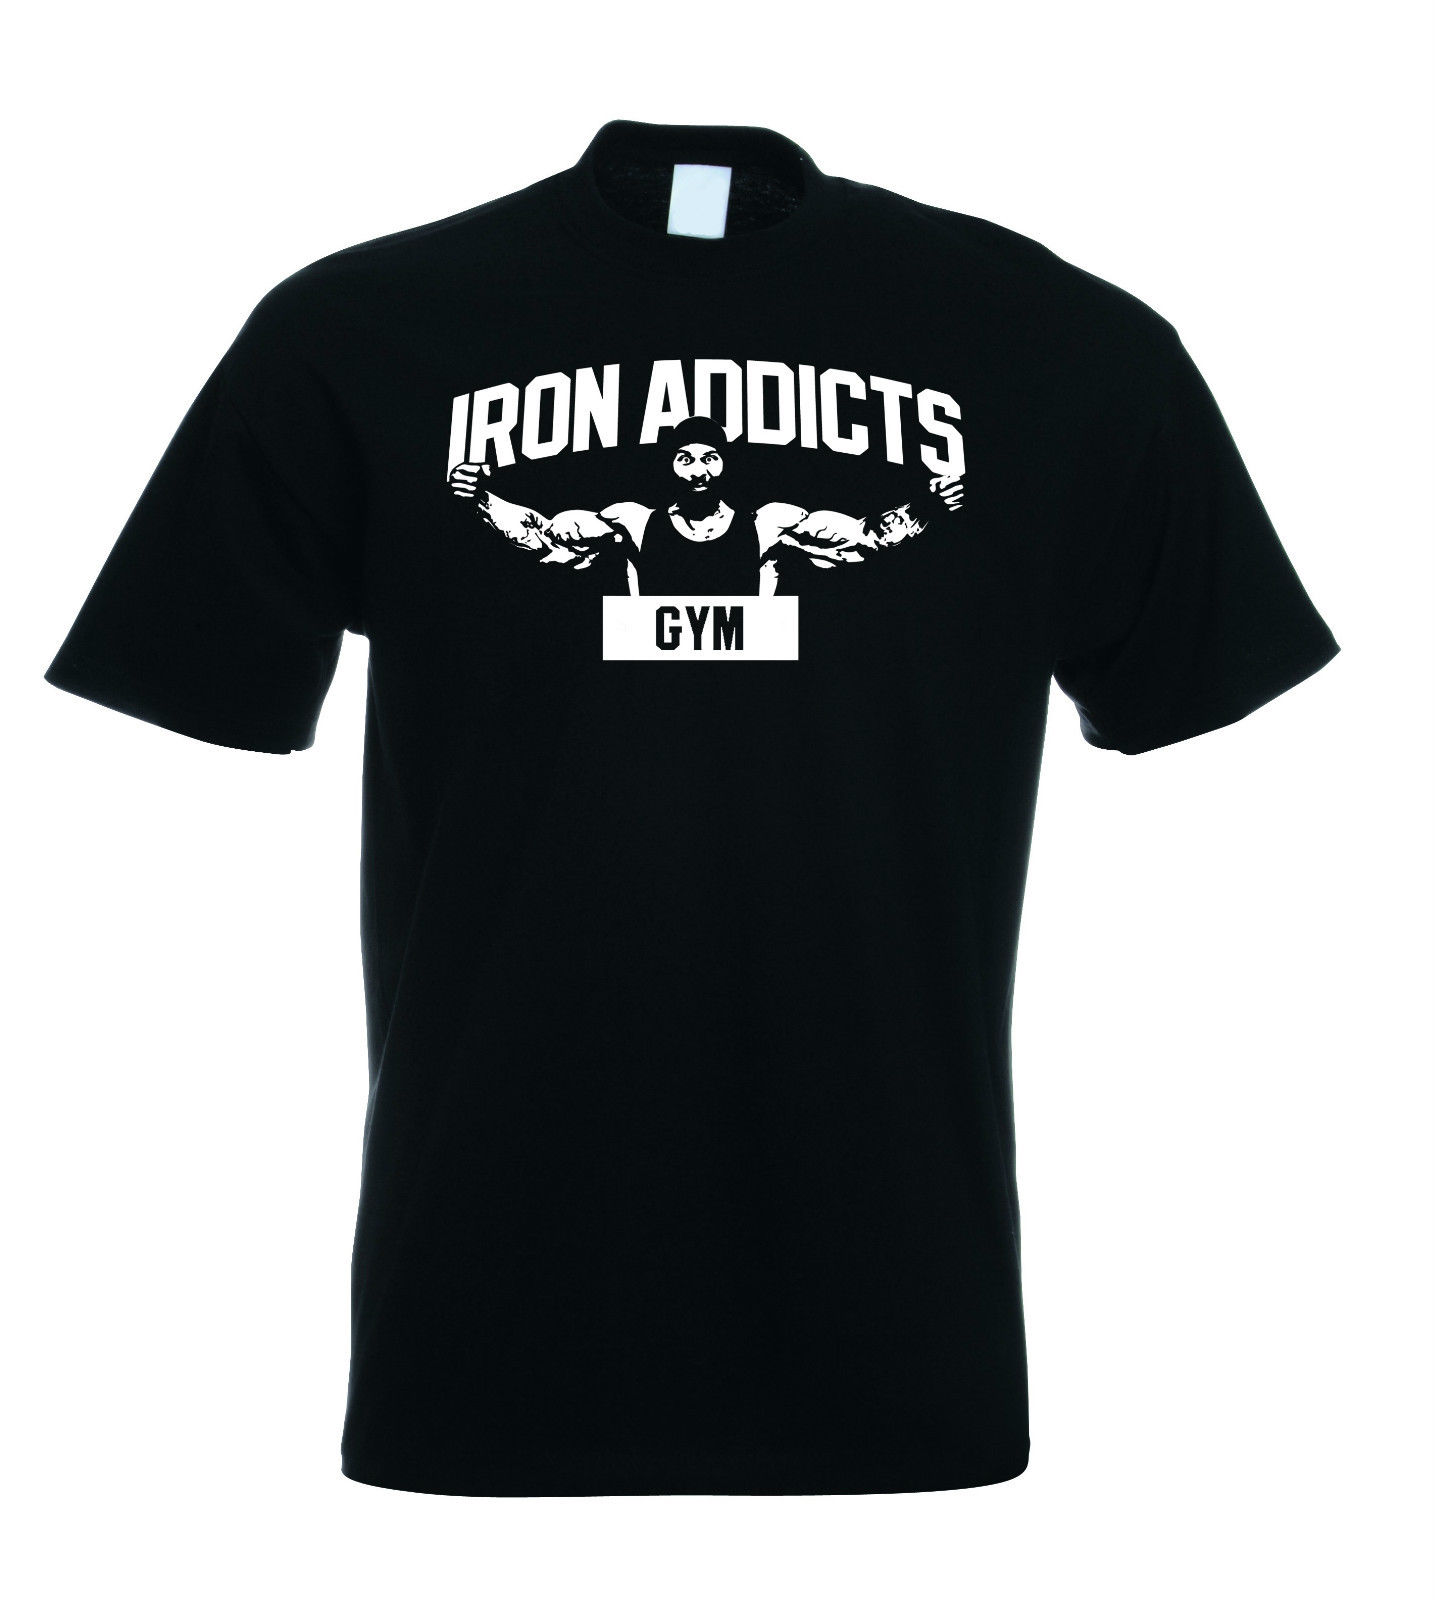 IRON ADDICTS GYMER T SHIRT CT FLETCHER MIKE RASHID - Black Sleeves Boy Cotton Men T-Shirt Top Tee Breathable